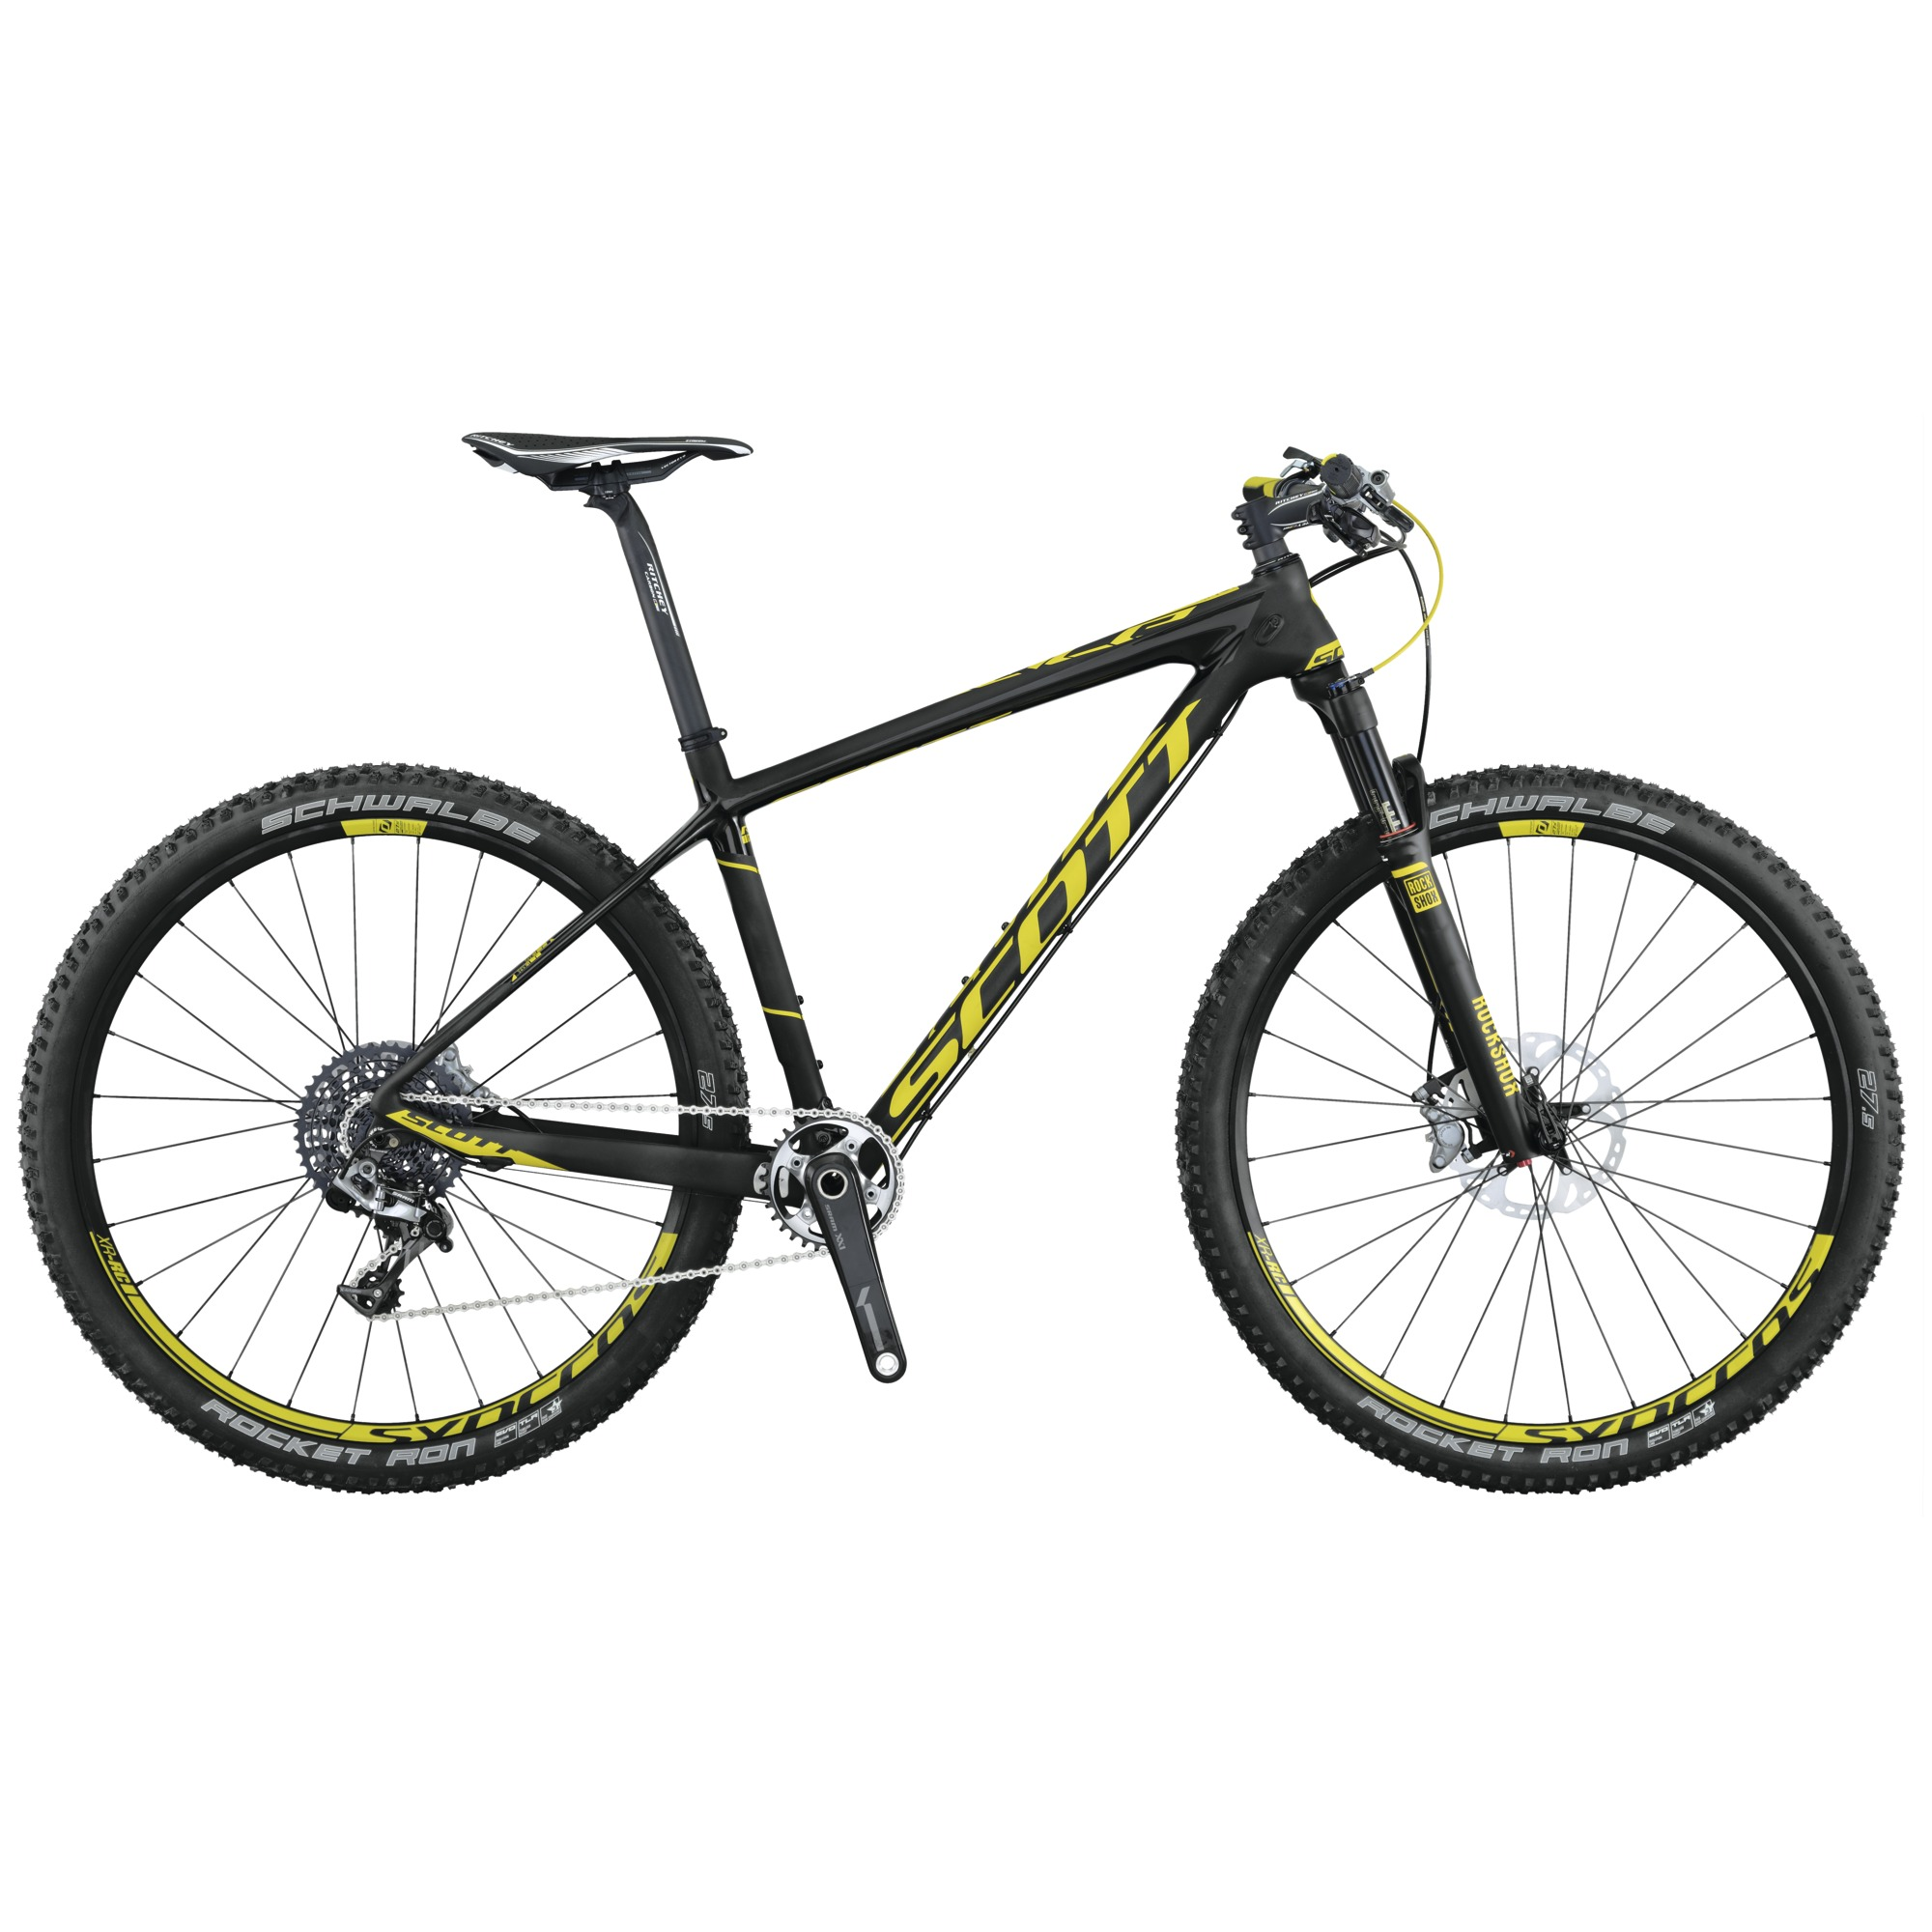 40d34768f74 Scott Scale 700 RC - High Peaks Cyclery - Lake Placid, NY